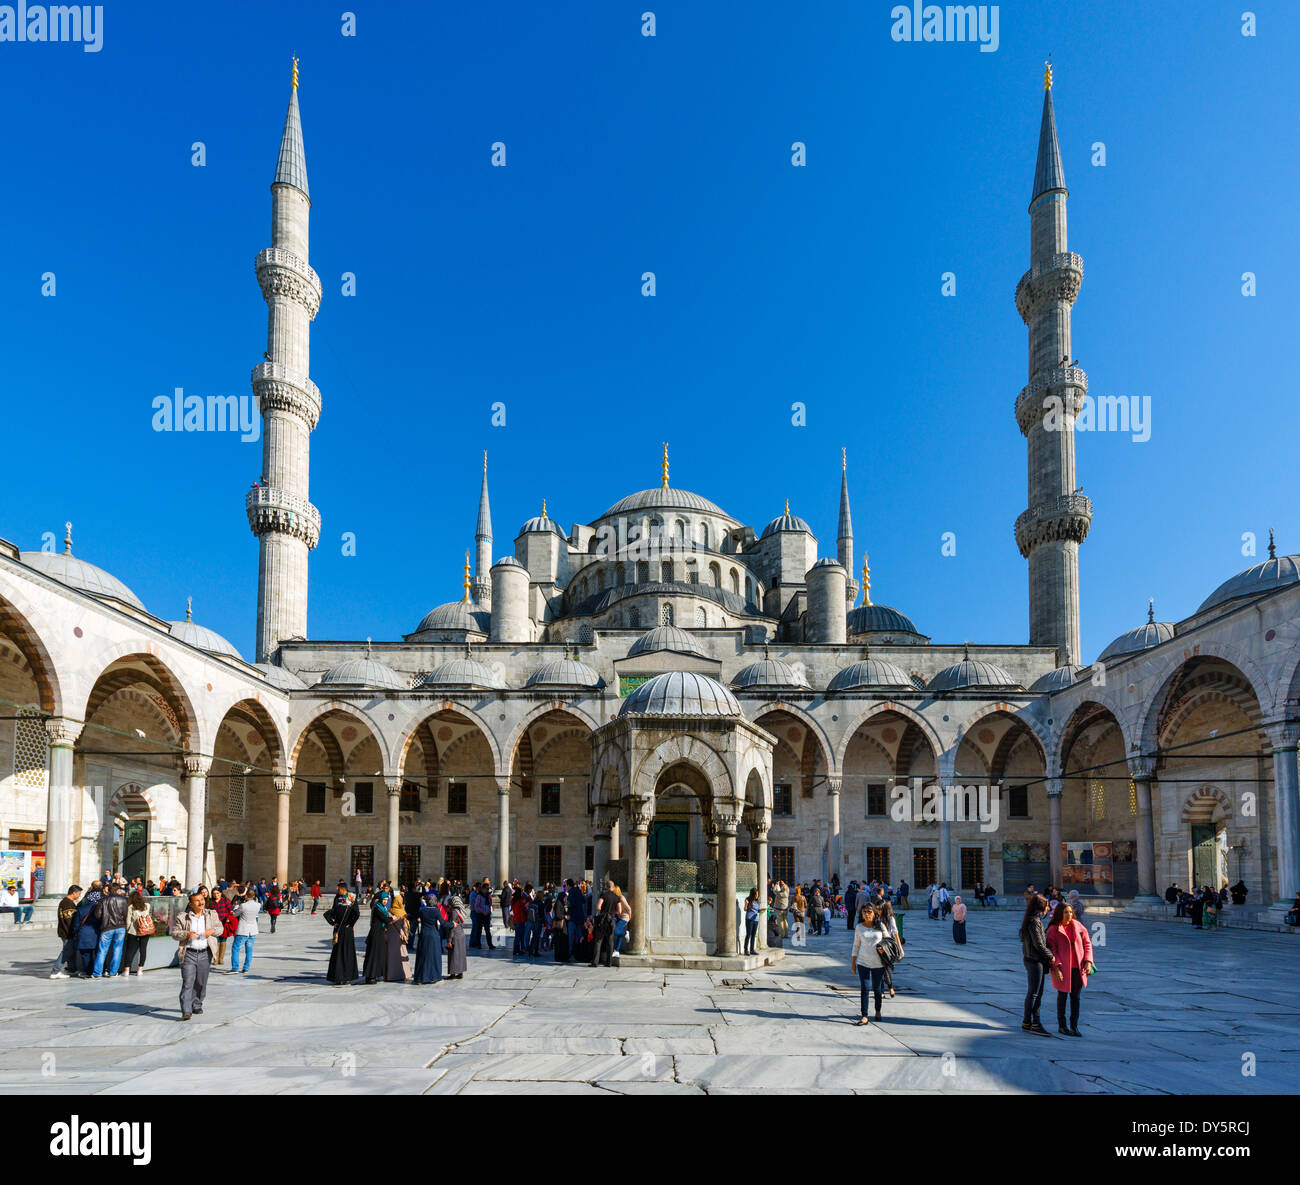 Istanbul. Courtyard of the Blue Mosque (Sultanahmet Camii), Sultanahmet district, Istanbul,Turkey - Stock Image